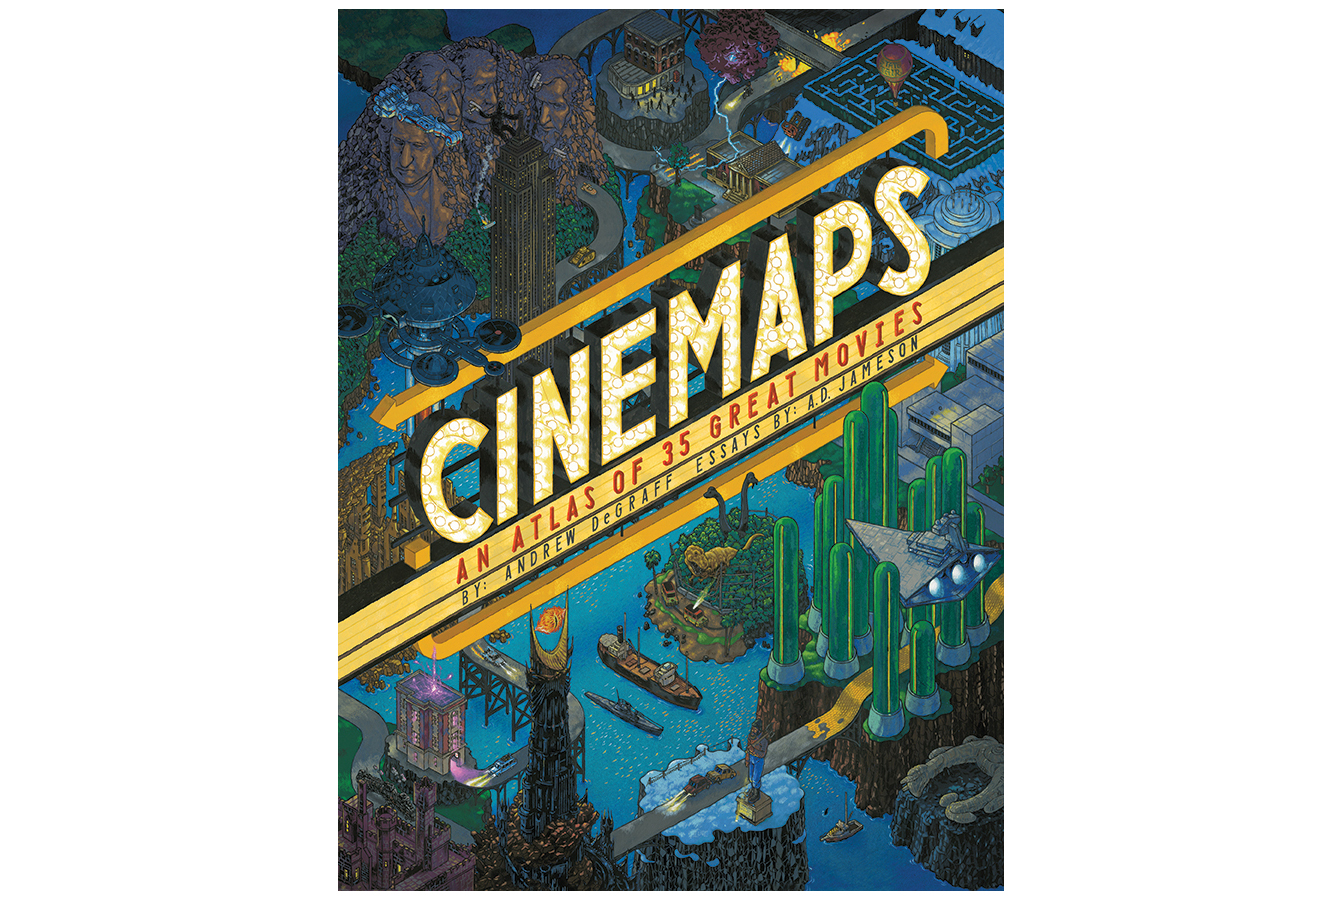 Cinemaps, by Andrew DeGraff and A.D. Jameson